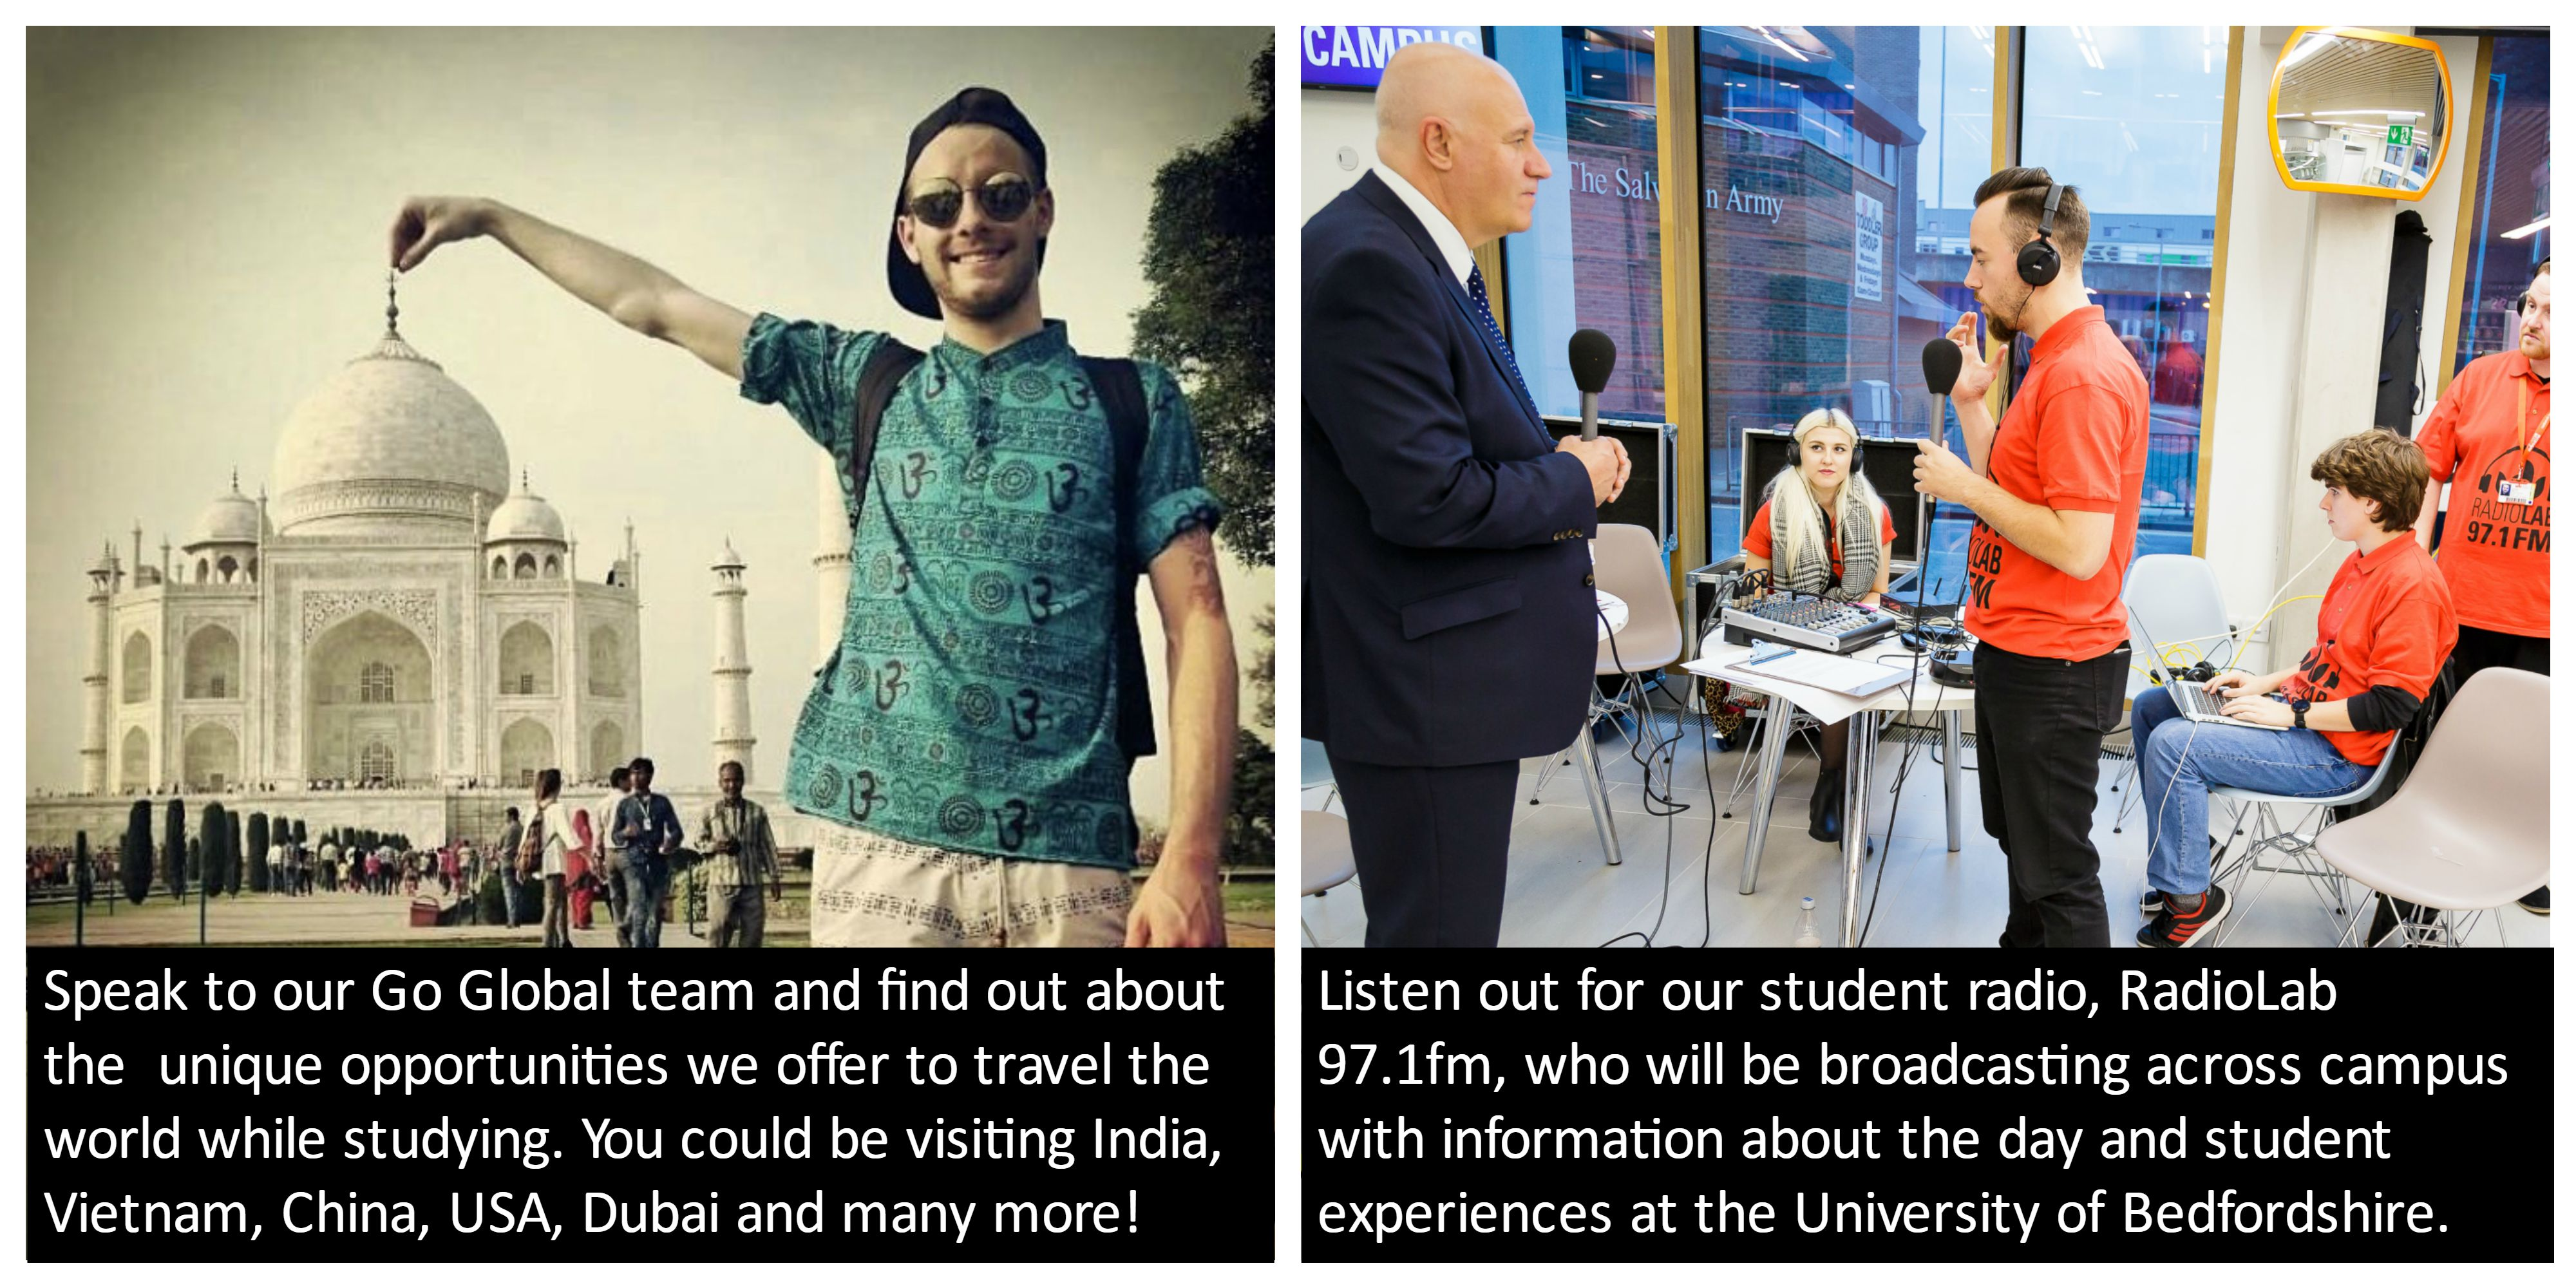 Speak to our Go Global team and find out about the unique opportunities we offer to travel the world while studying. You could be visiting India, Vietnam, China, USA, Dubai and many more! Listen out for our student radio; Radio Lab 97.1fm. They will be broadcasting across campus providing you with information about the day and student experiences at the University of Bedfordshire.